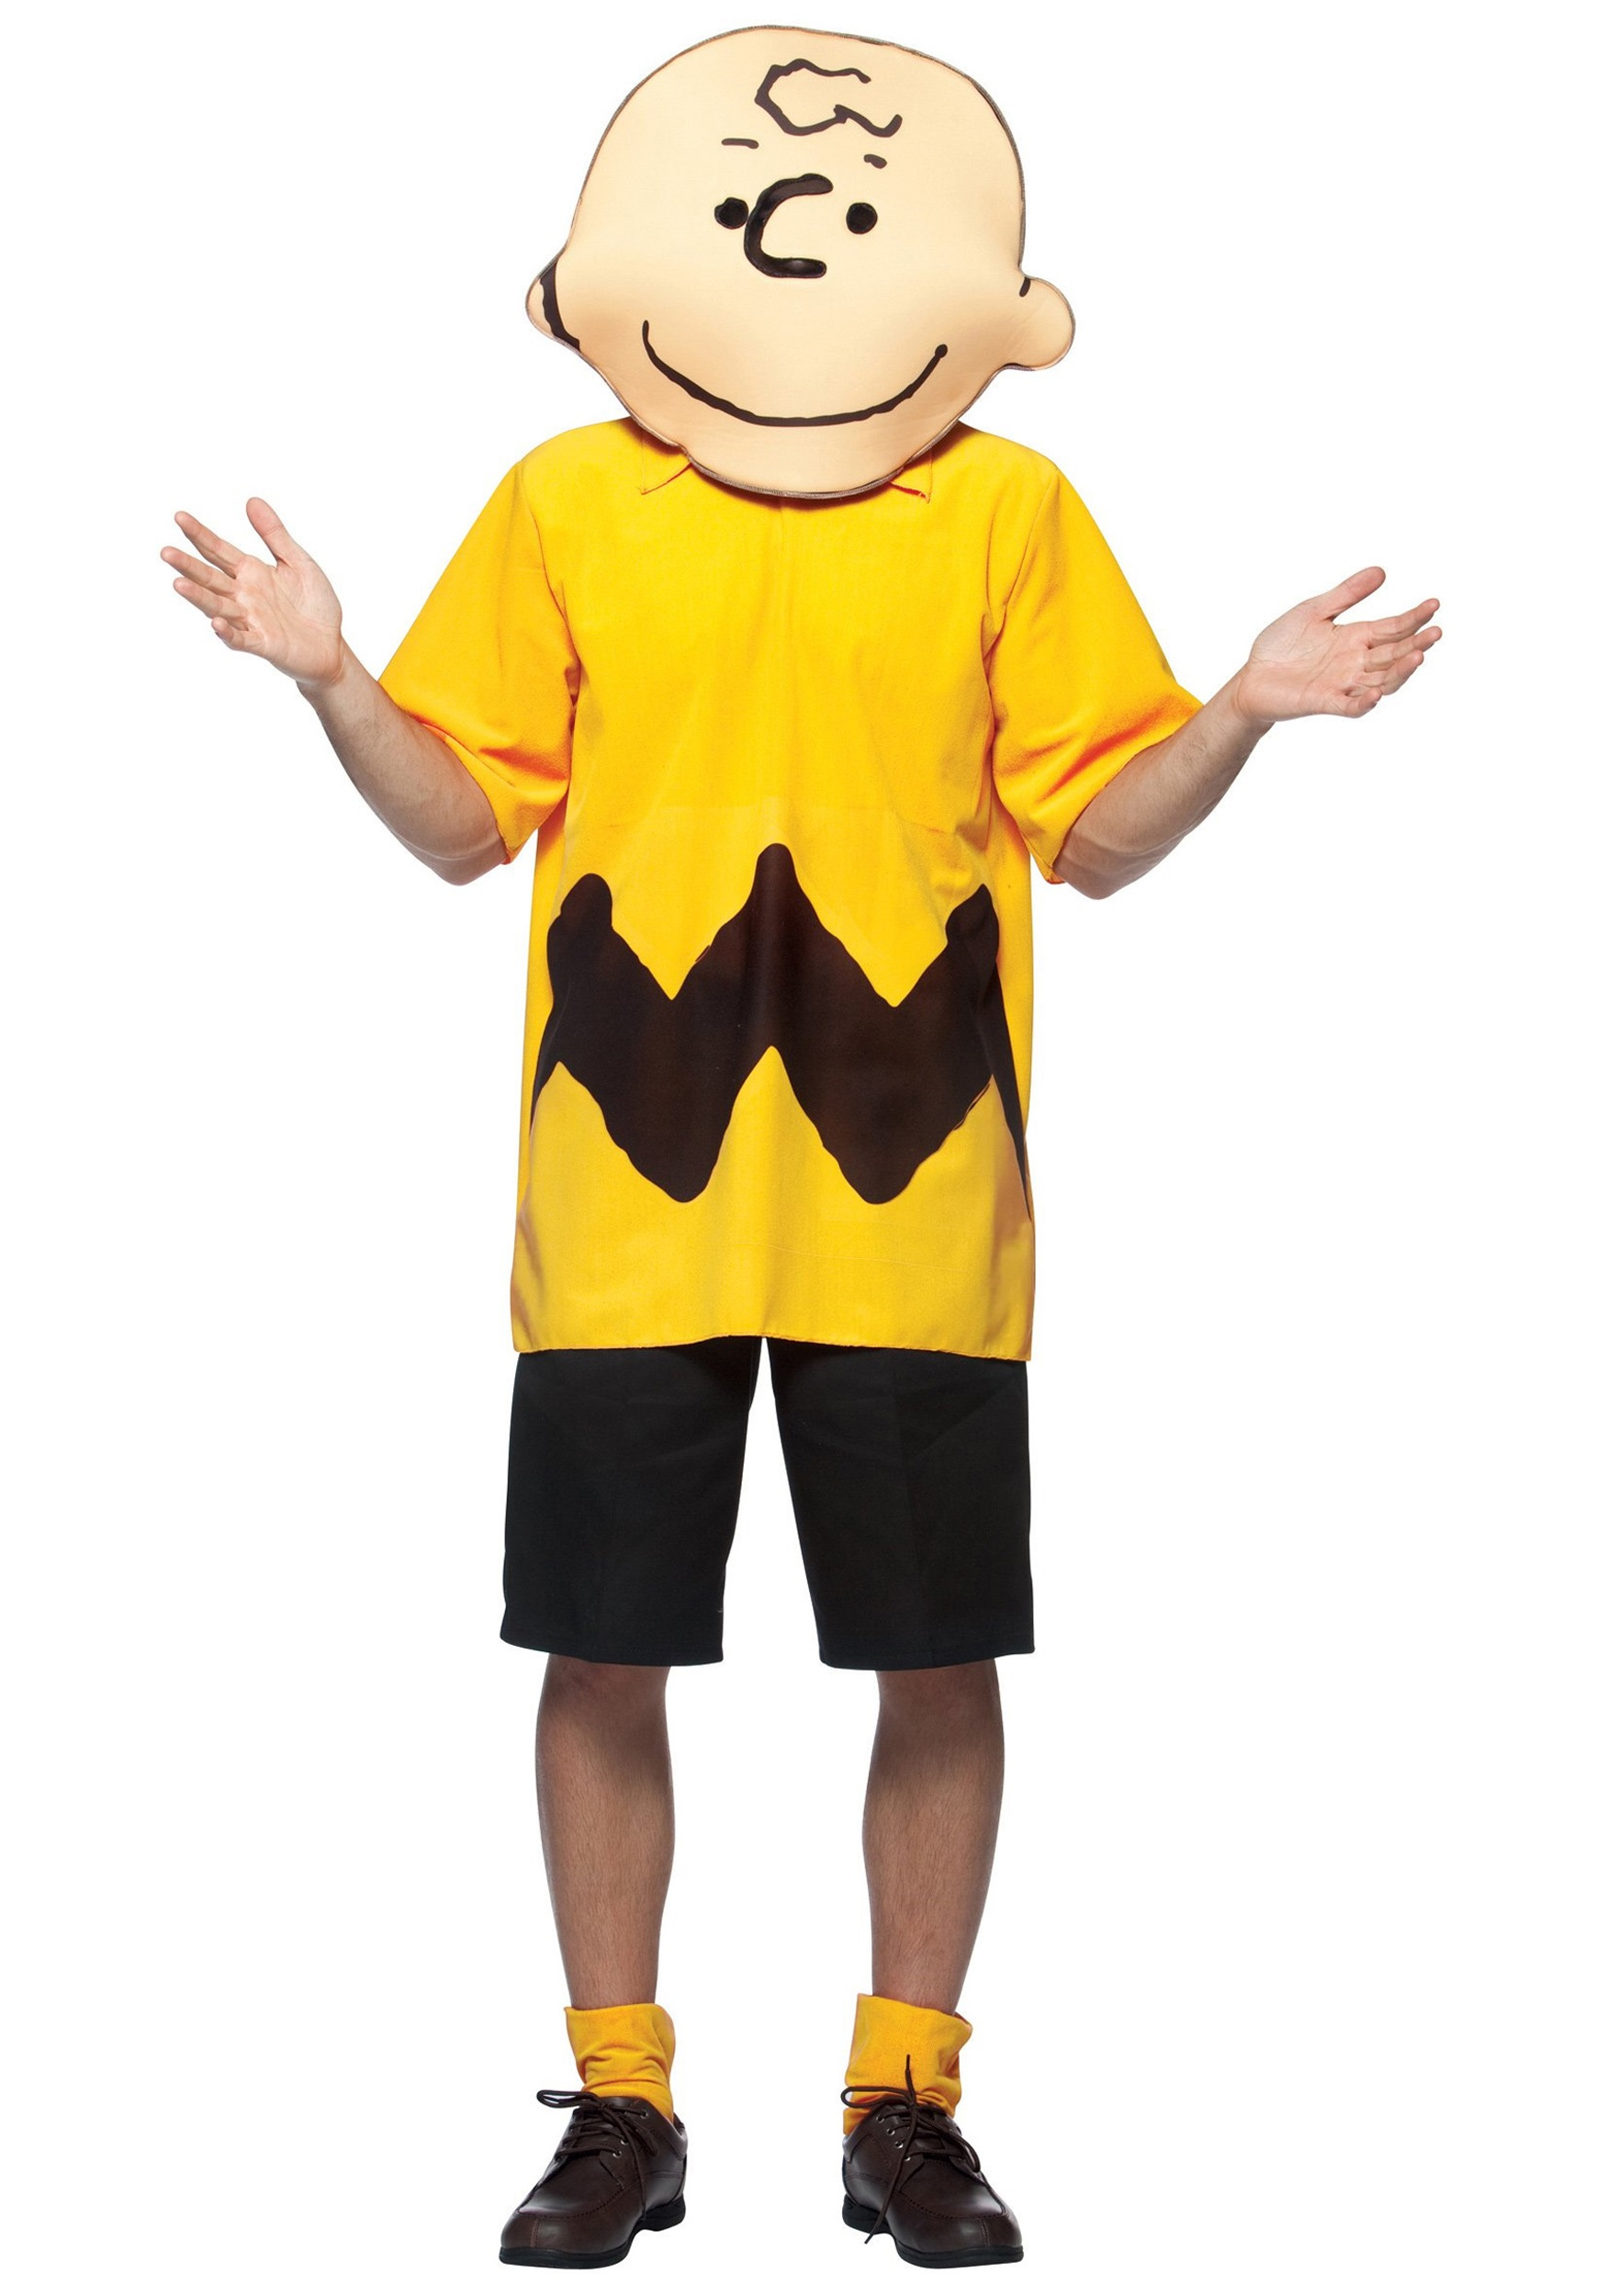 Adult Charlie Brown Costume  sc 1 st  Costumes Galore & Adult Charlie Brown Costume - Peanuts Costumes